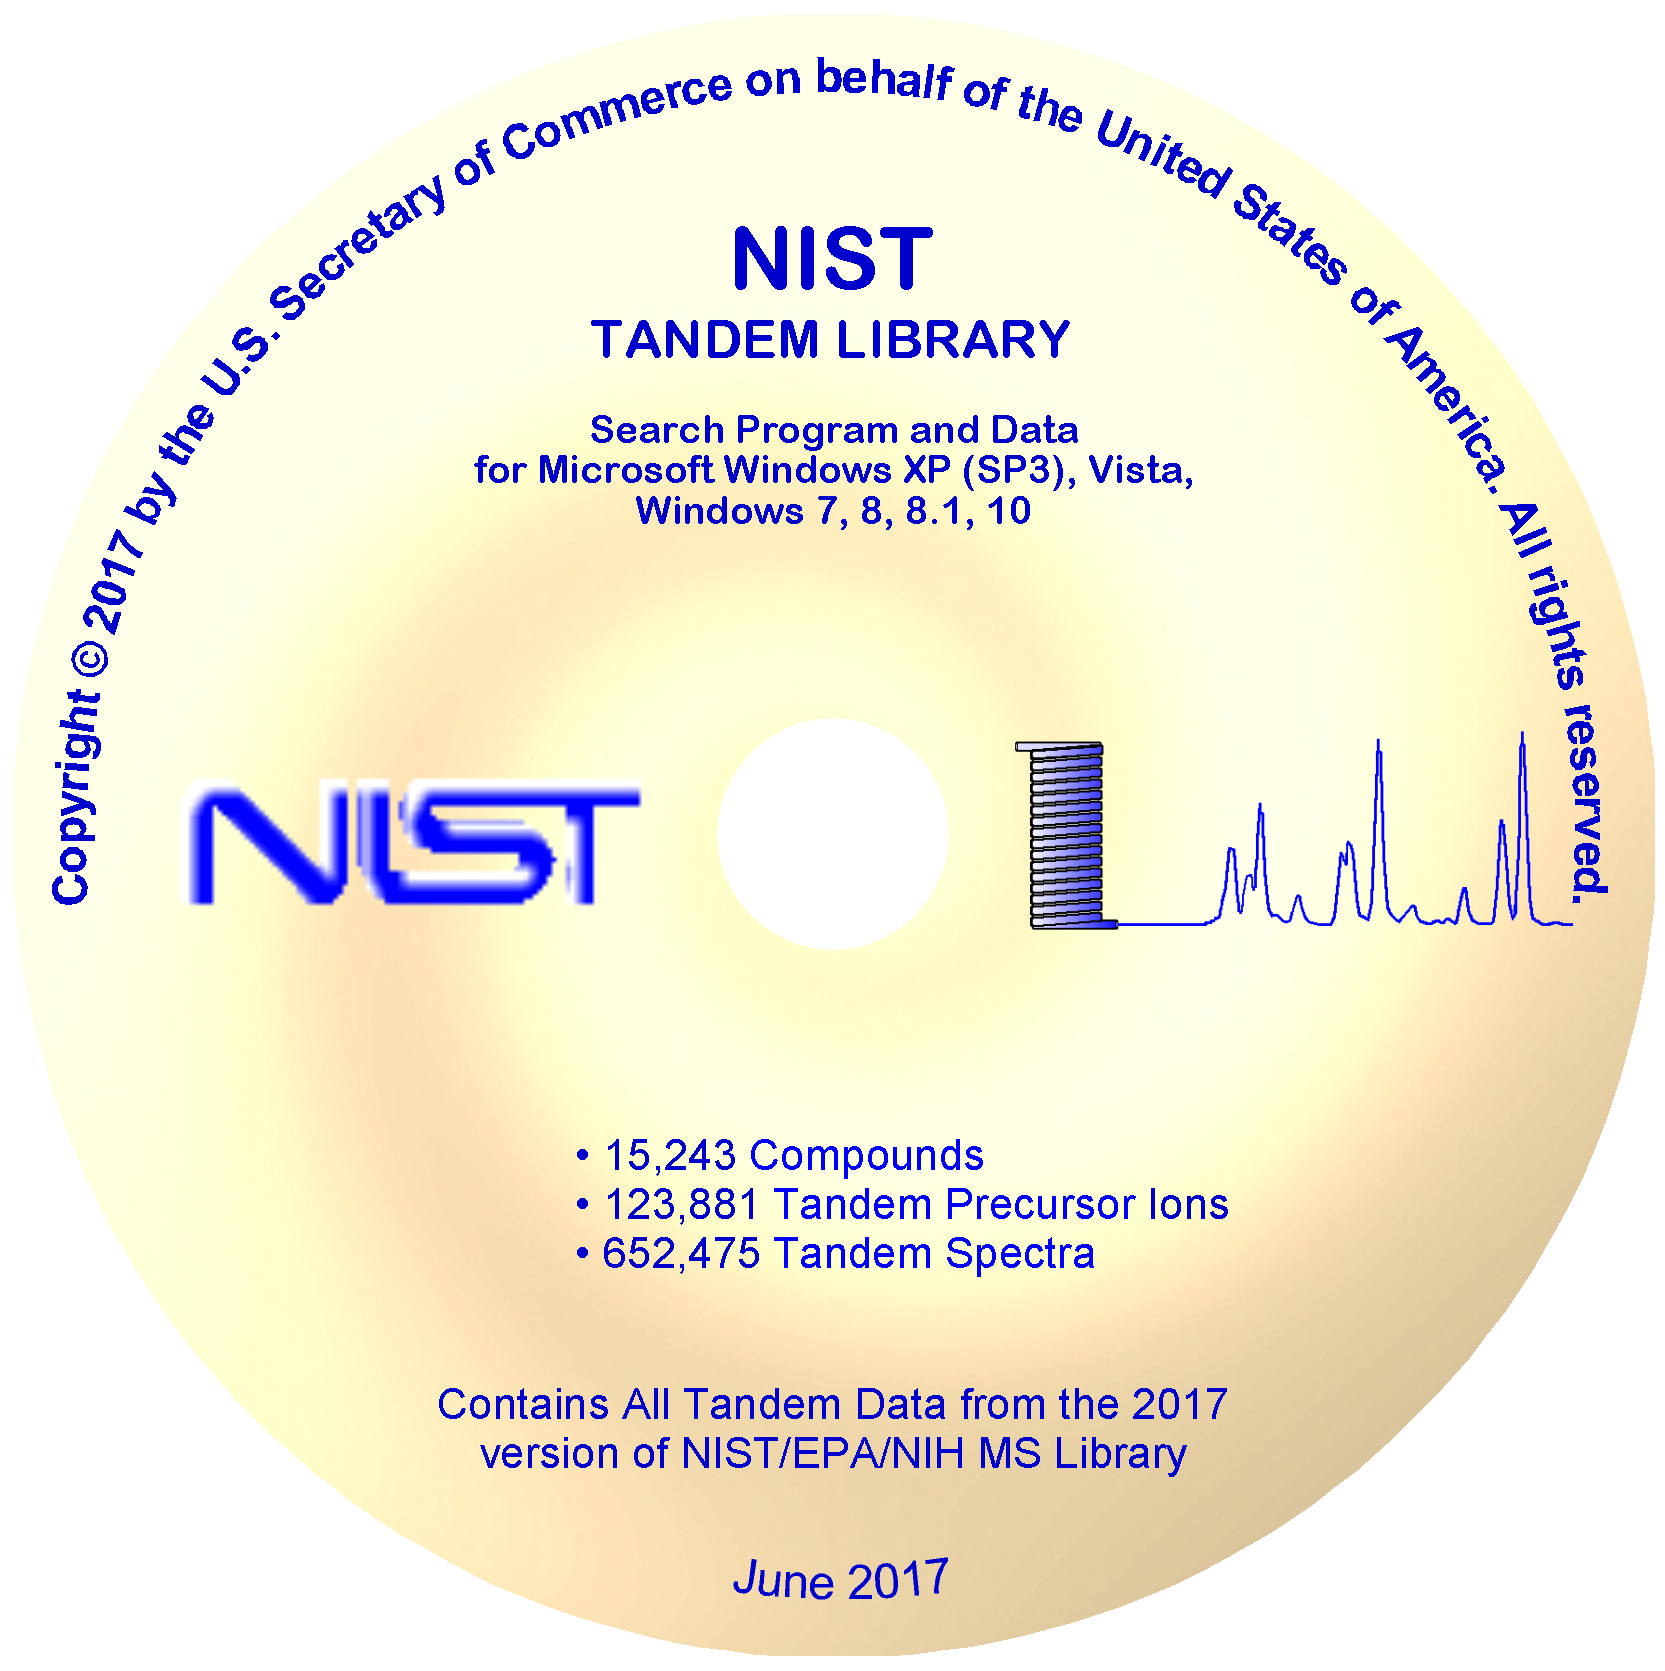 GCImage: NIST/EPA/NIH MS Library and Search Software